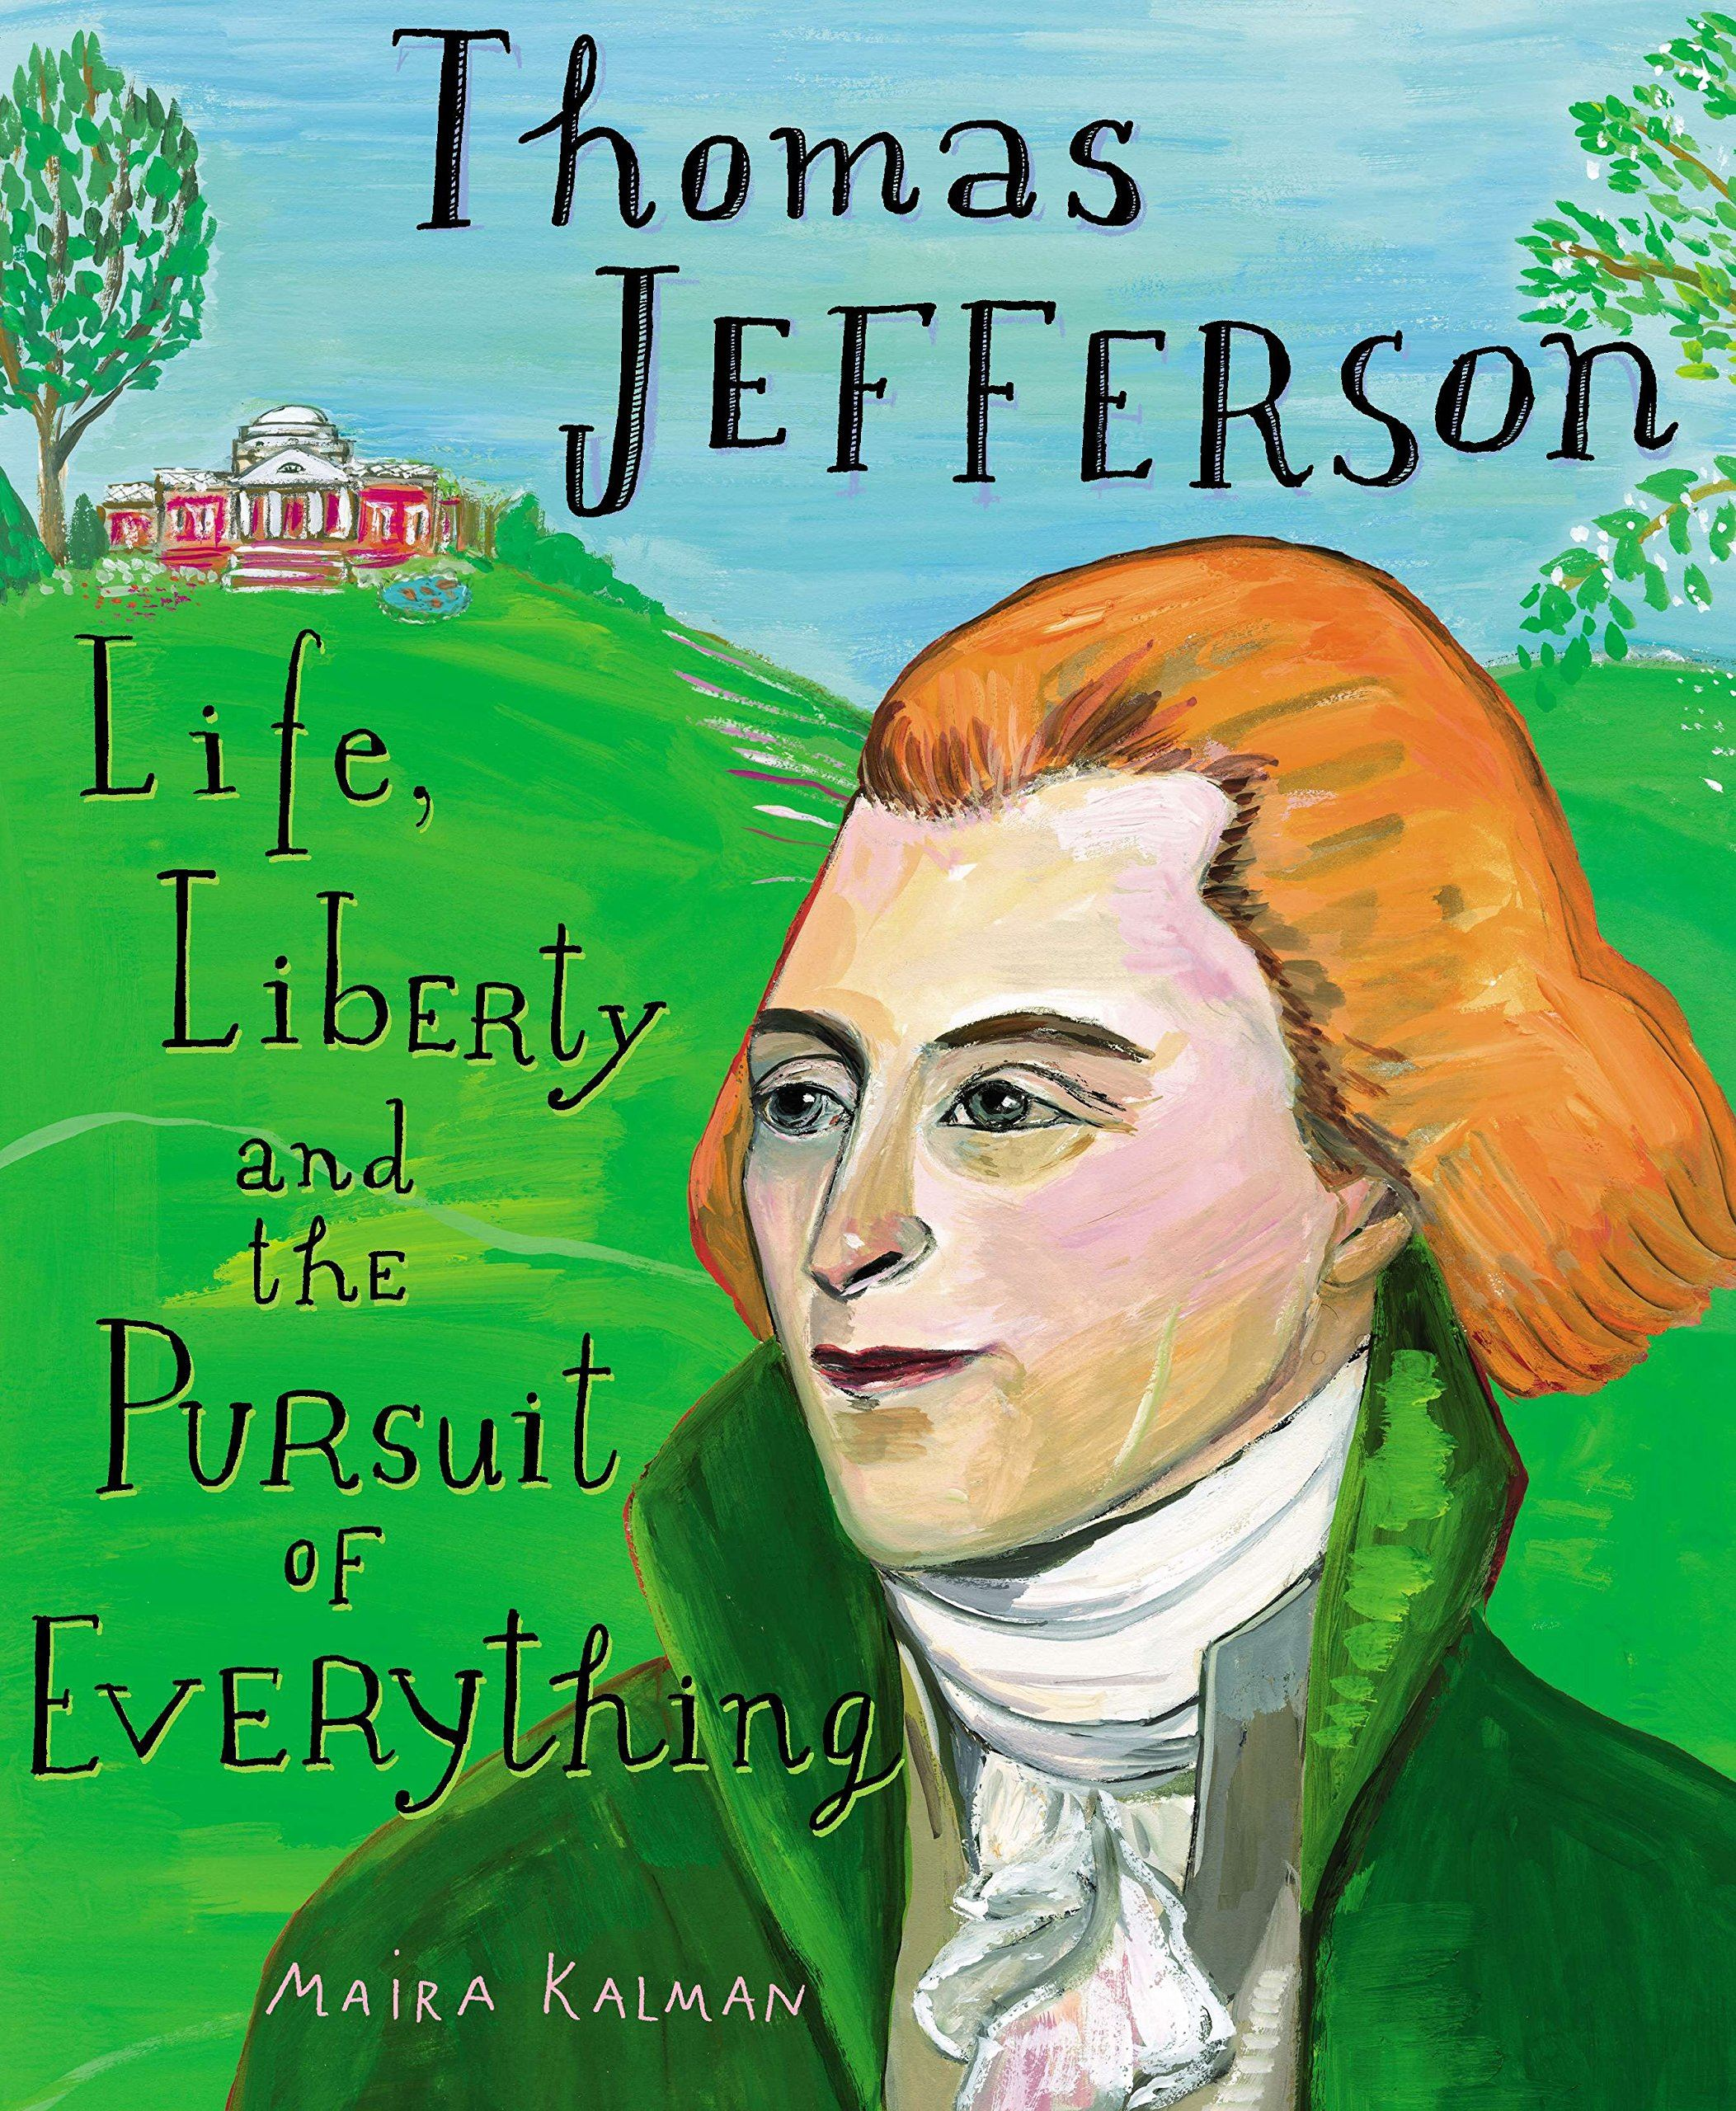 Thomas Jefferson Opens in new window